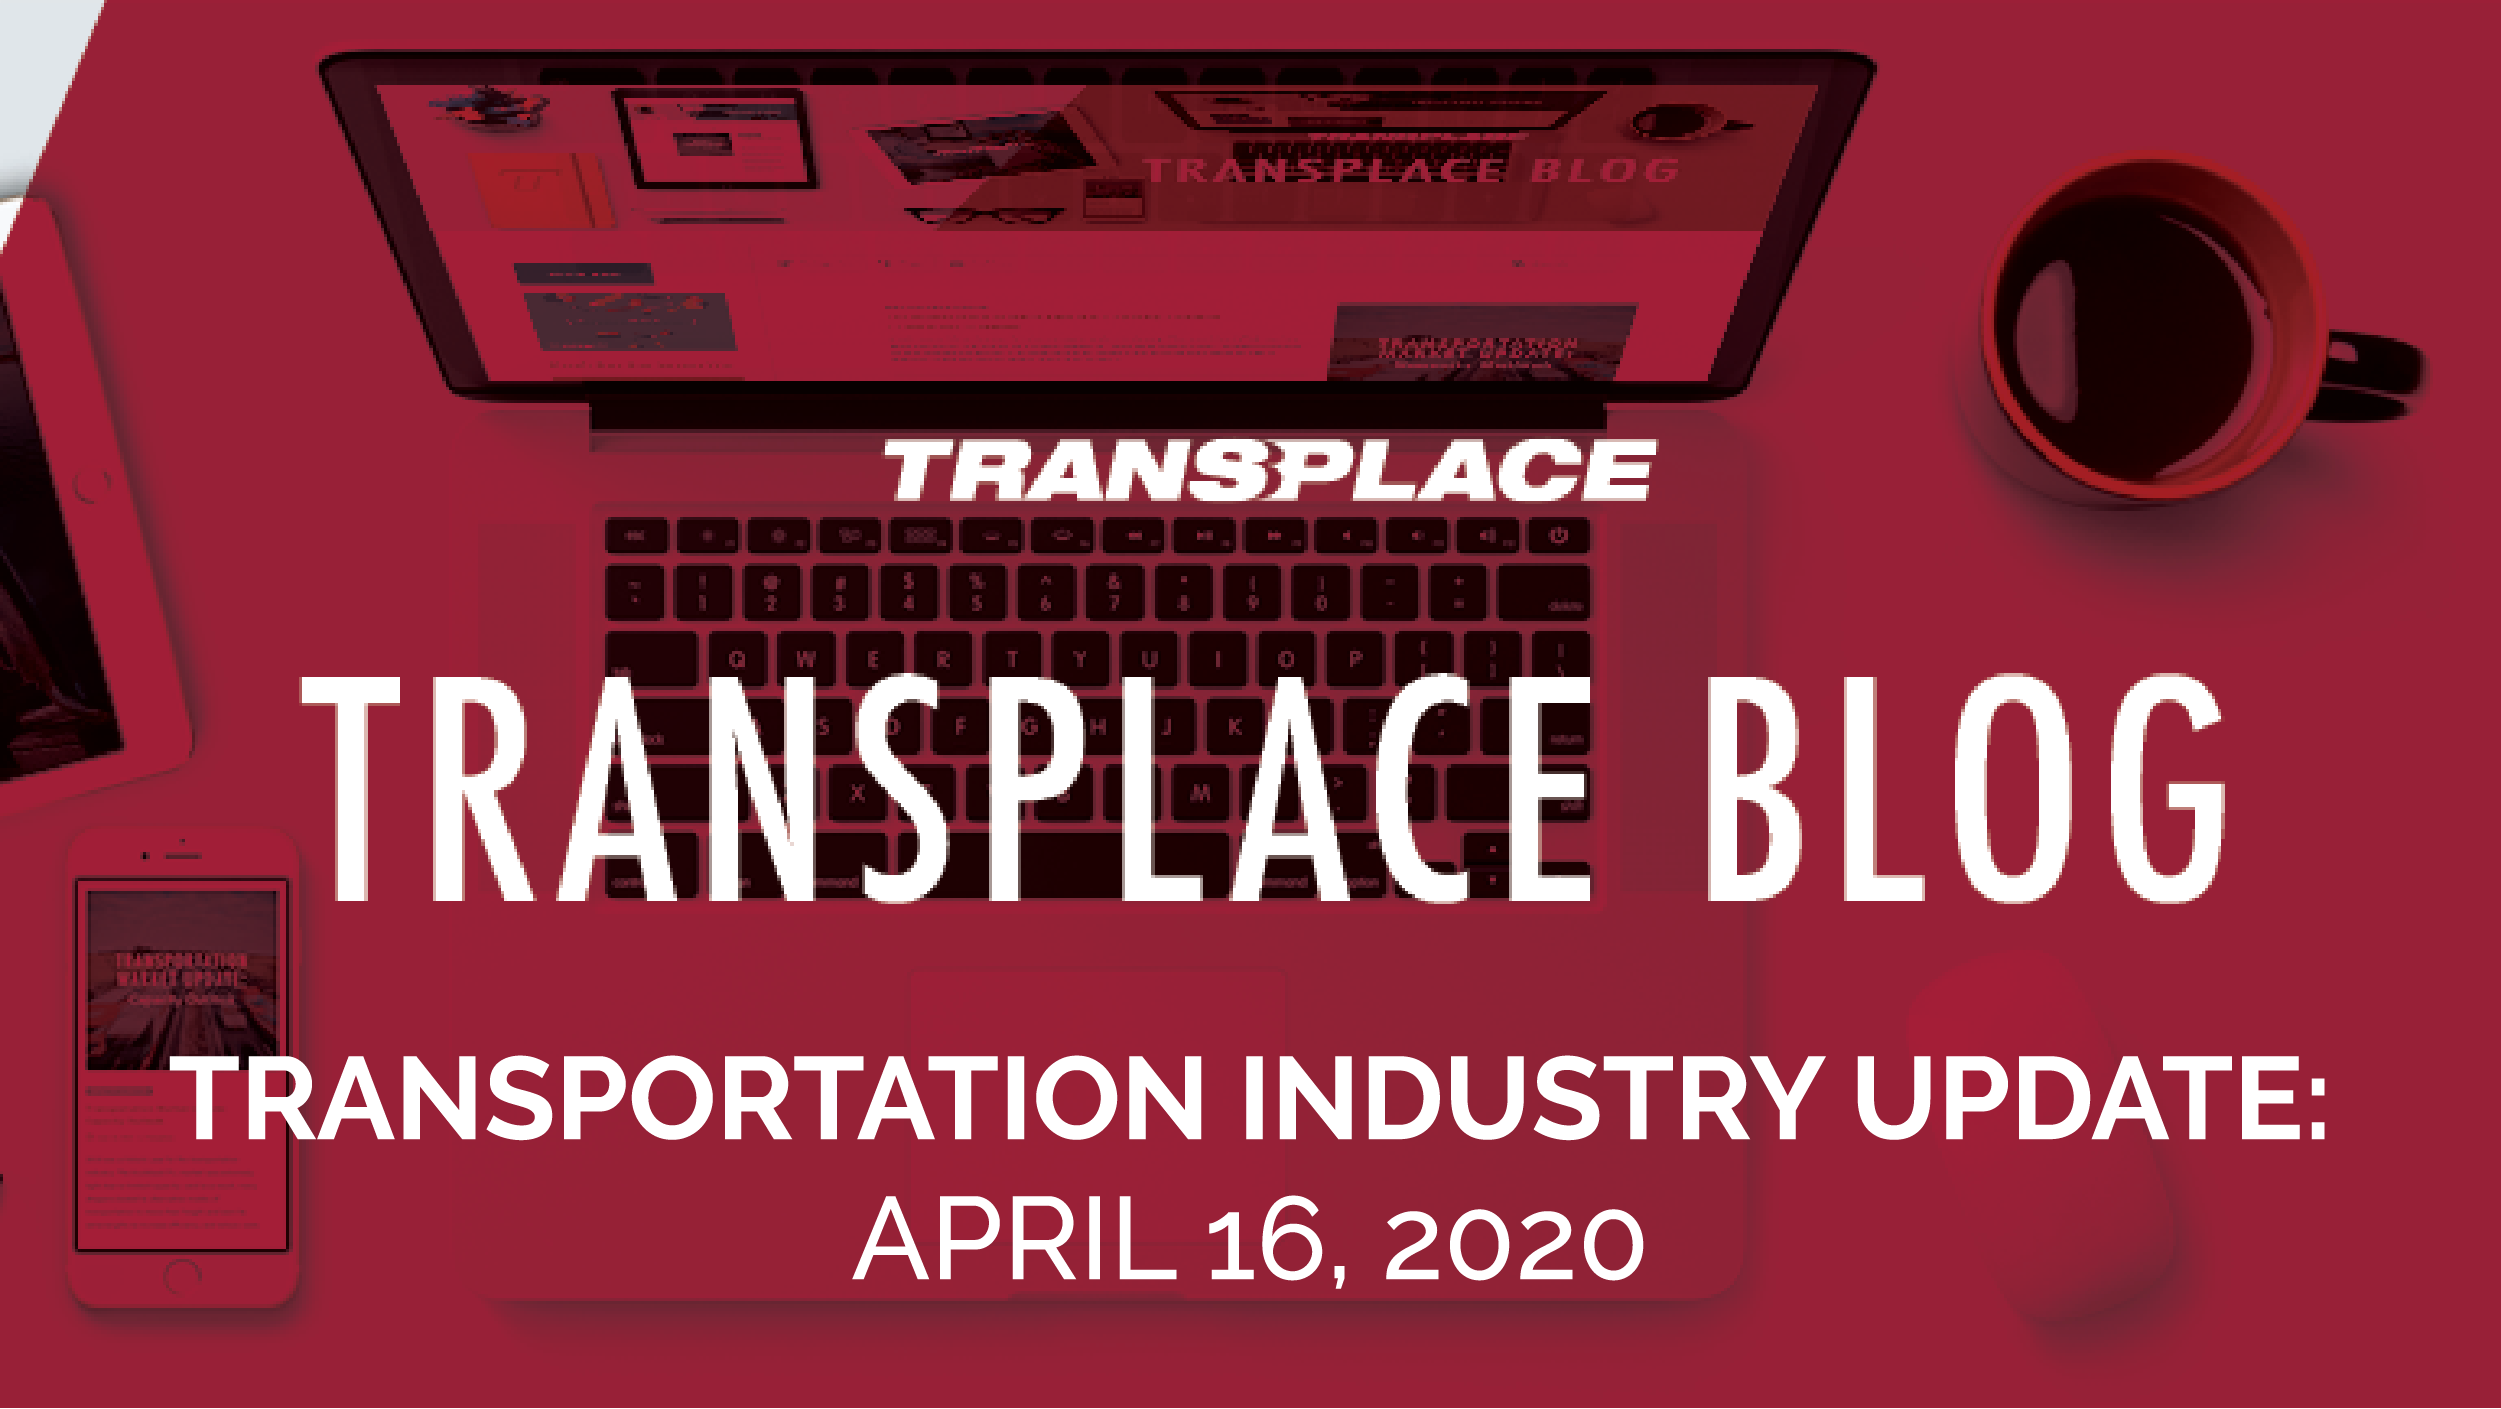 Transplace Blog cover-02-02